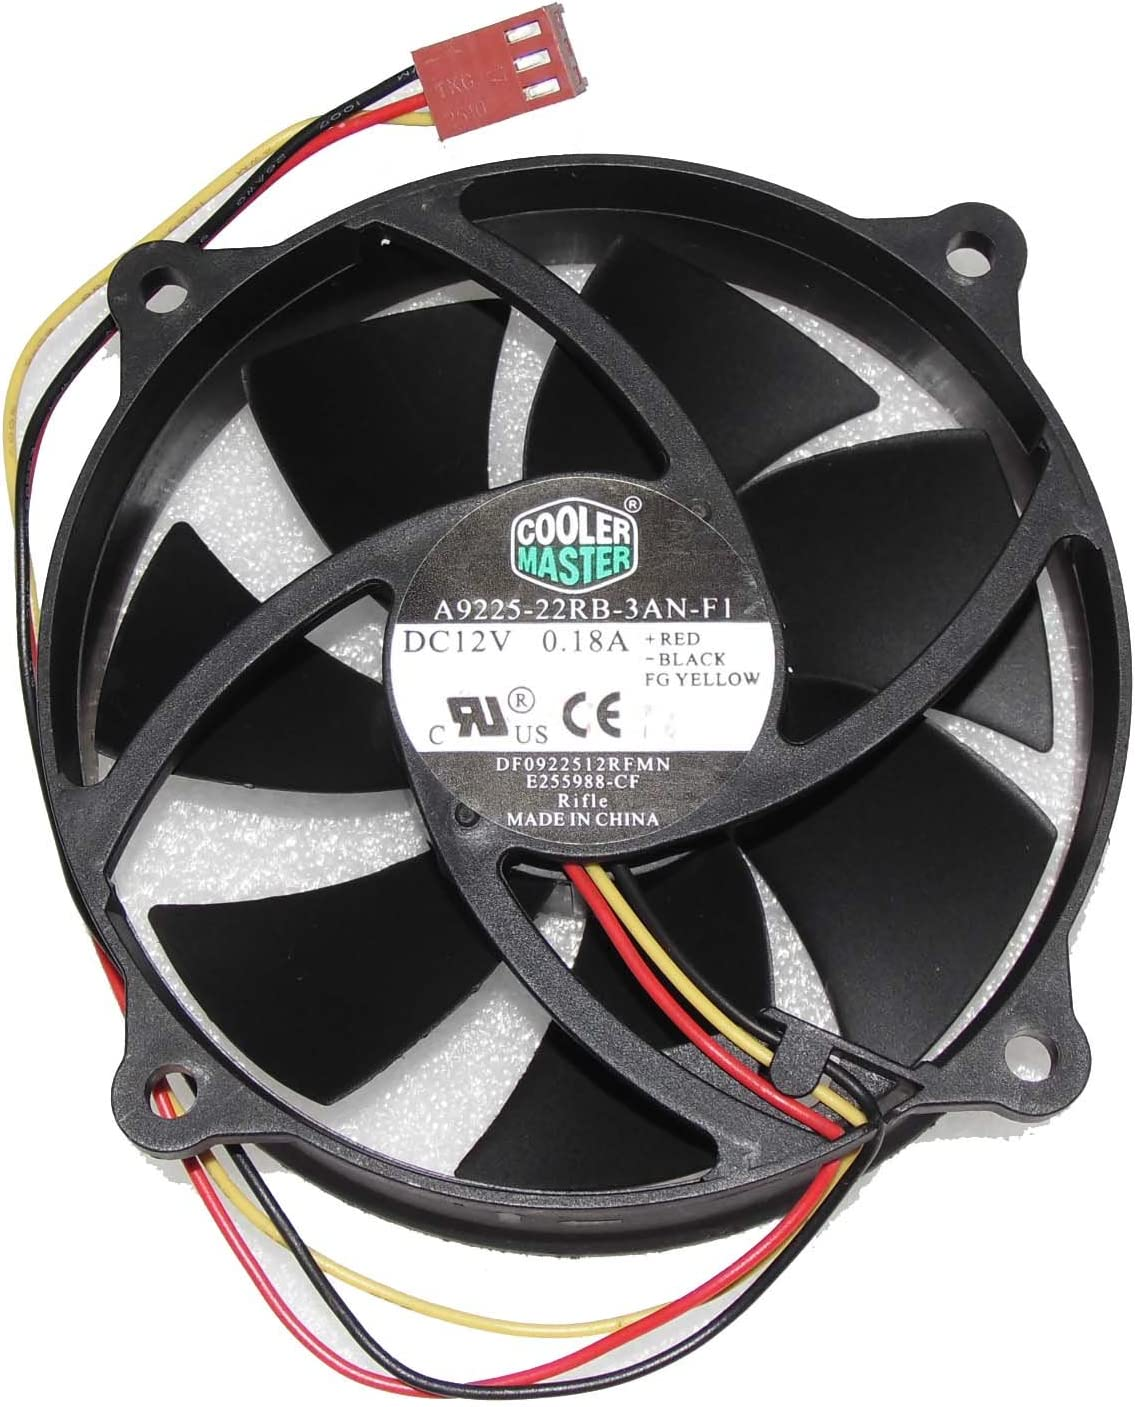 Cooler Master A9225-22RB-3AN-F1 DF0922512RFMN 12V 0.18A 3Wire Cooling Fan